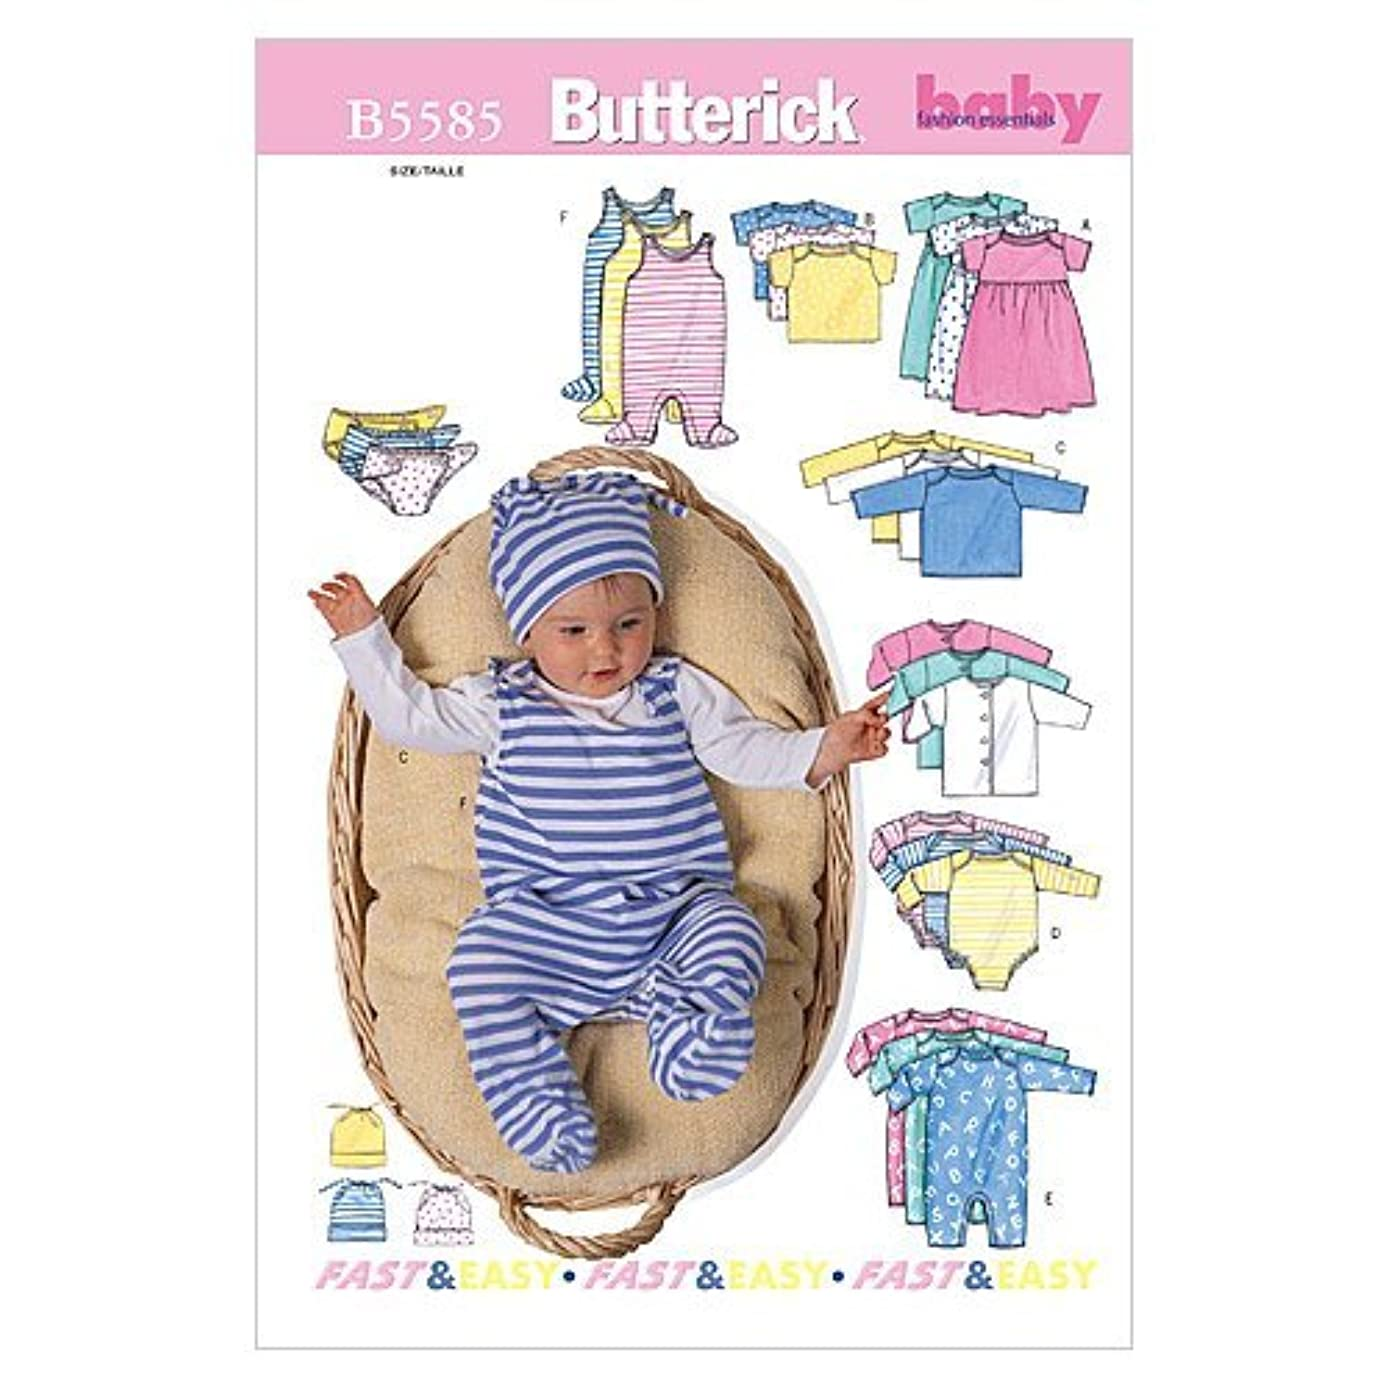 BUTTERICK PATTERNS B5585 Infants' Jacket, Dress, Top, Romper, Diaper Cover and Hat, Size PRE (PRE-NB-S)